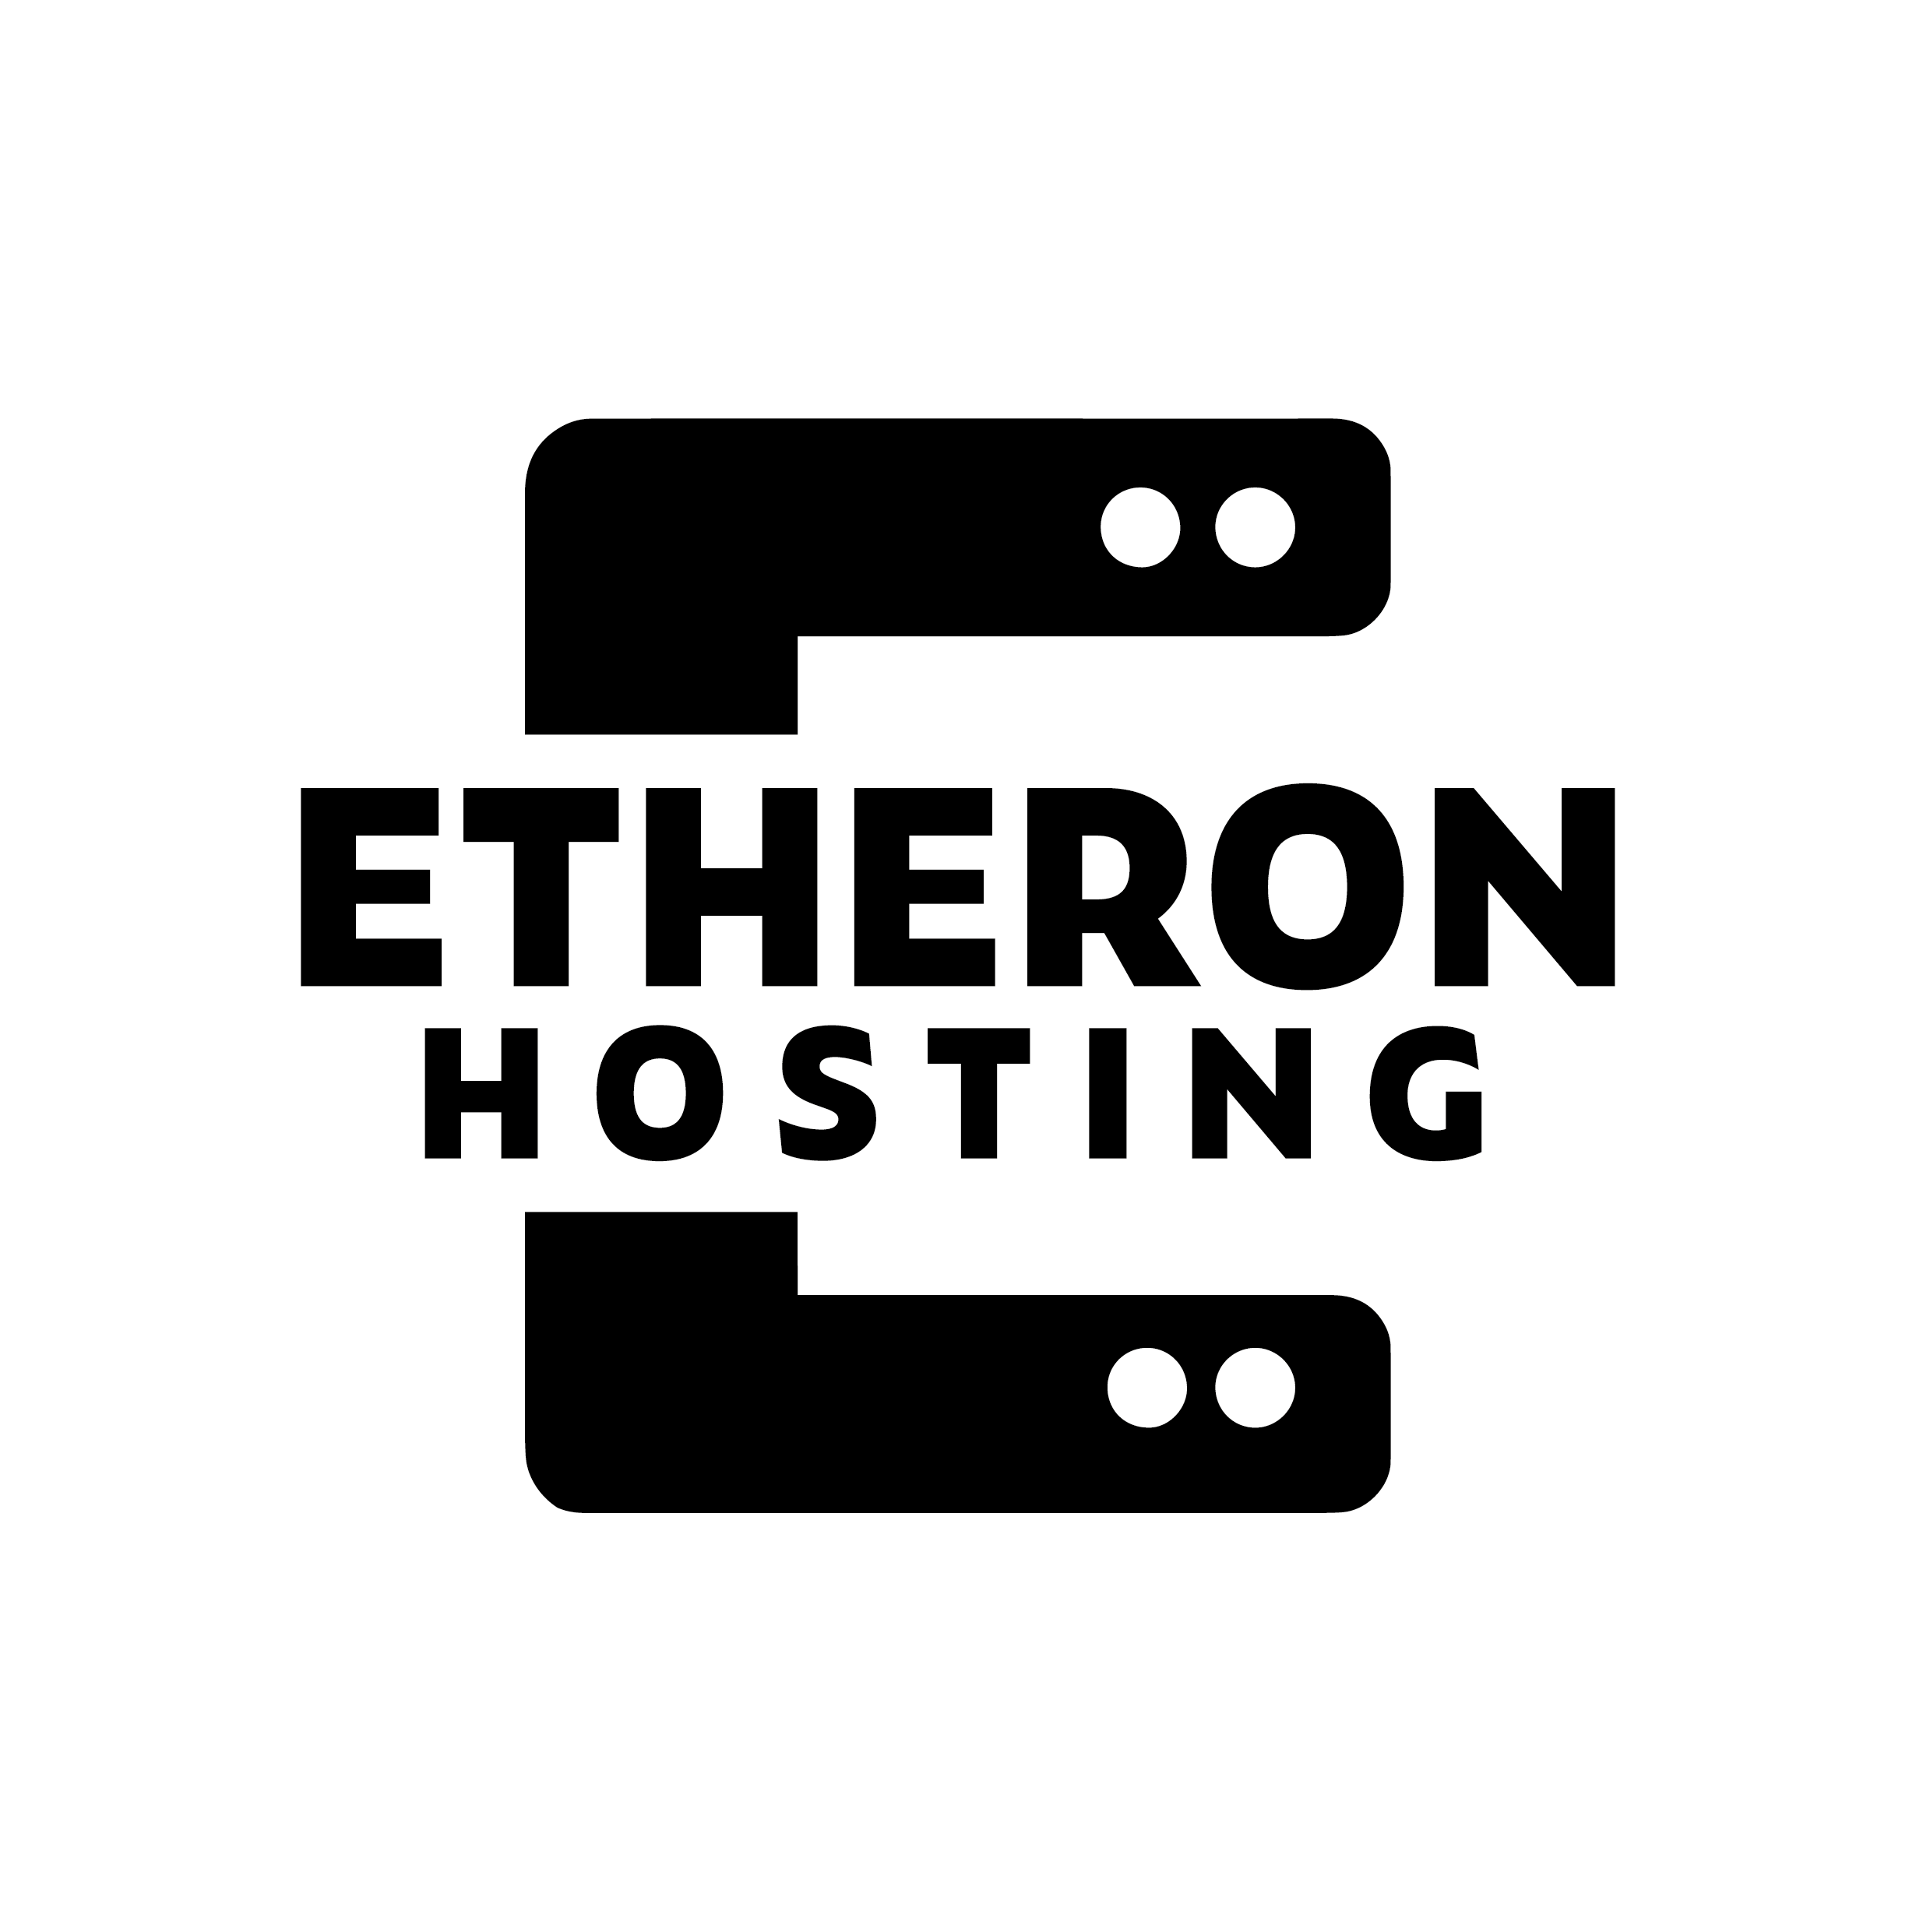 Etheron hosting logo in footer